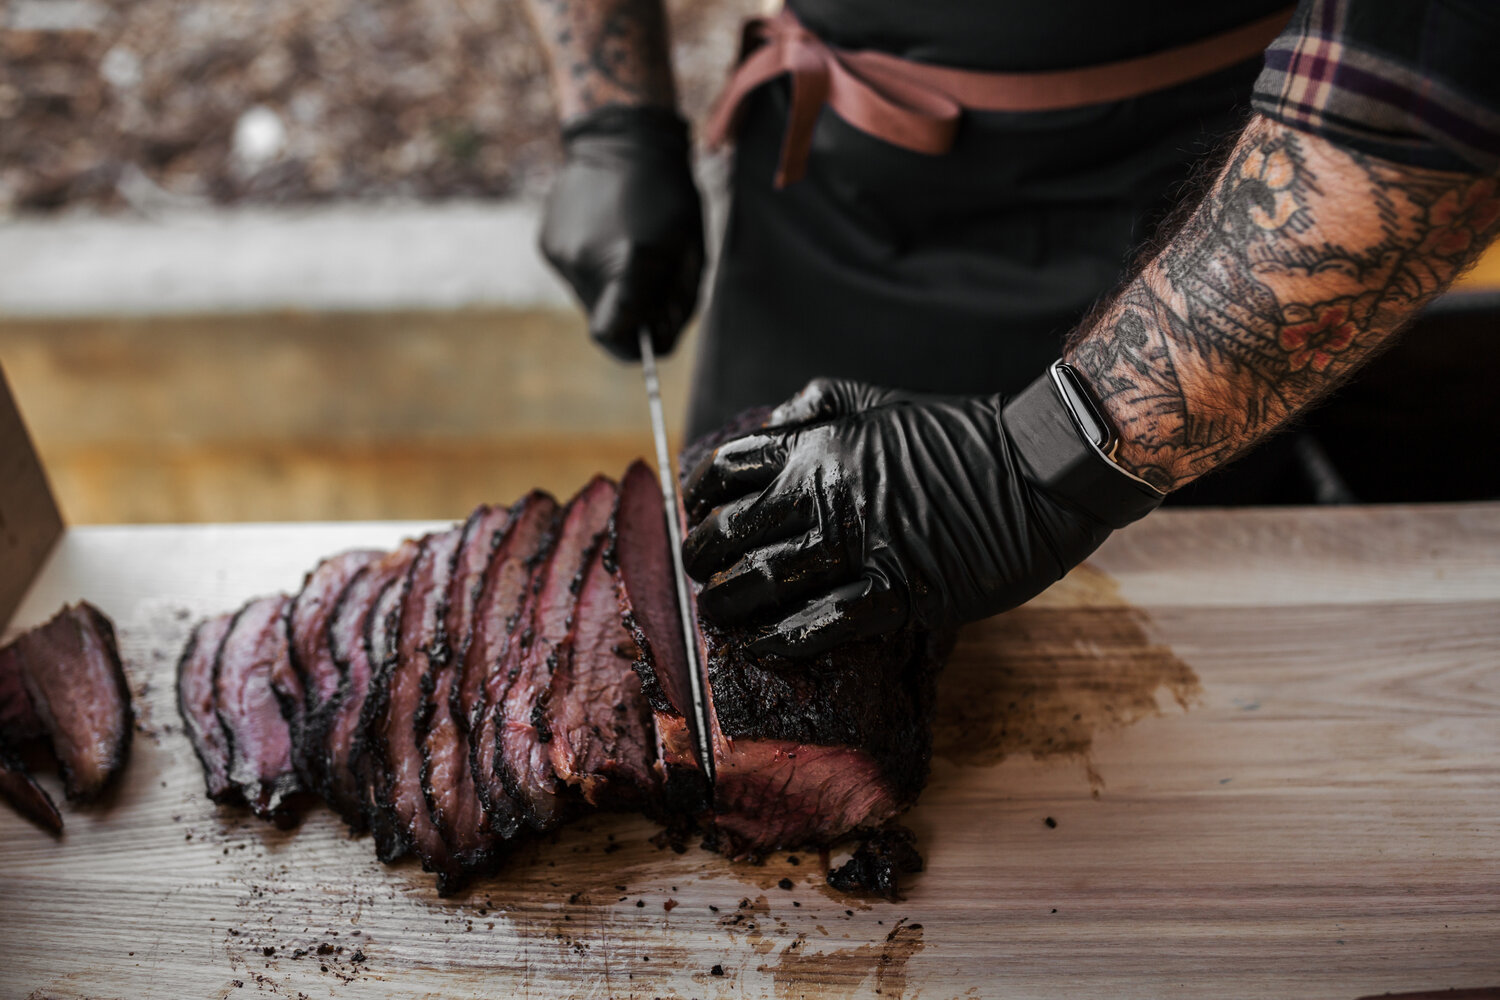 Pitmaster cutting through a piece of barbaque.